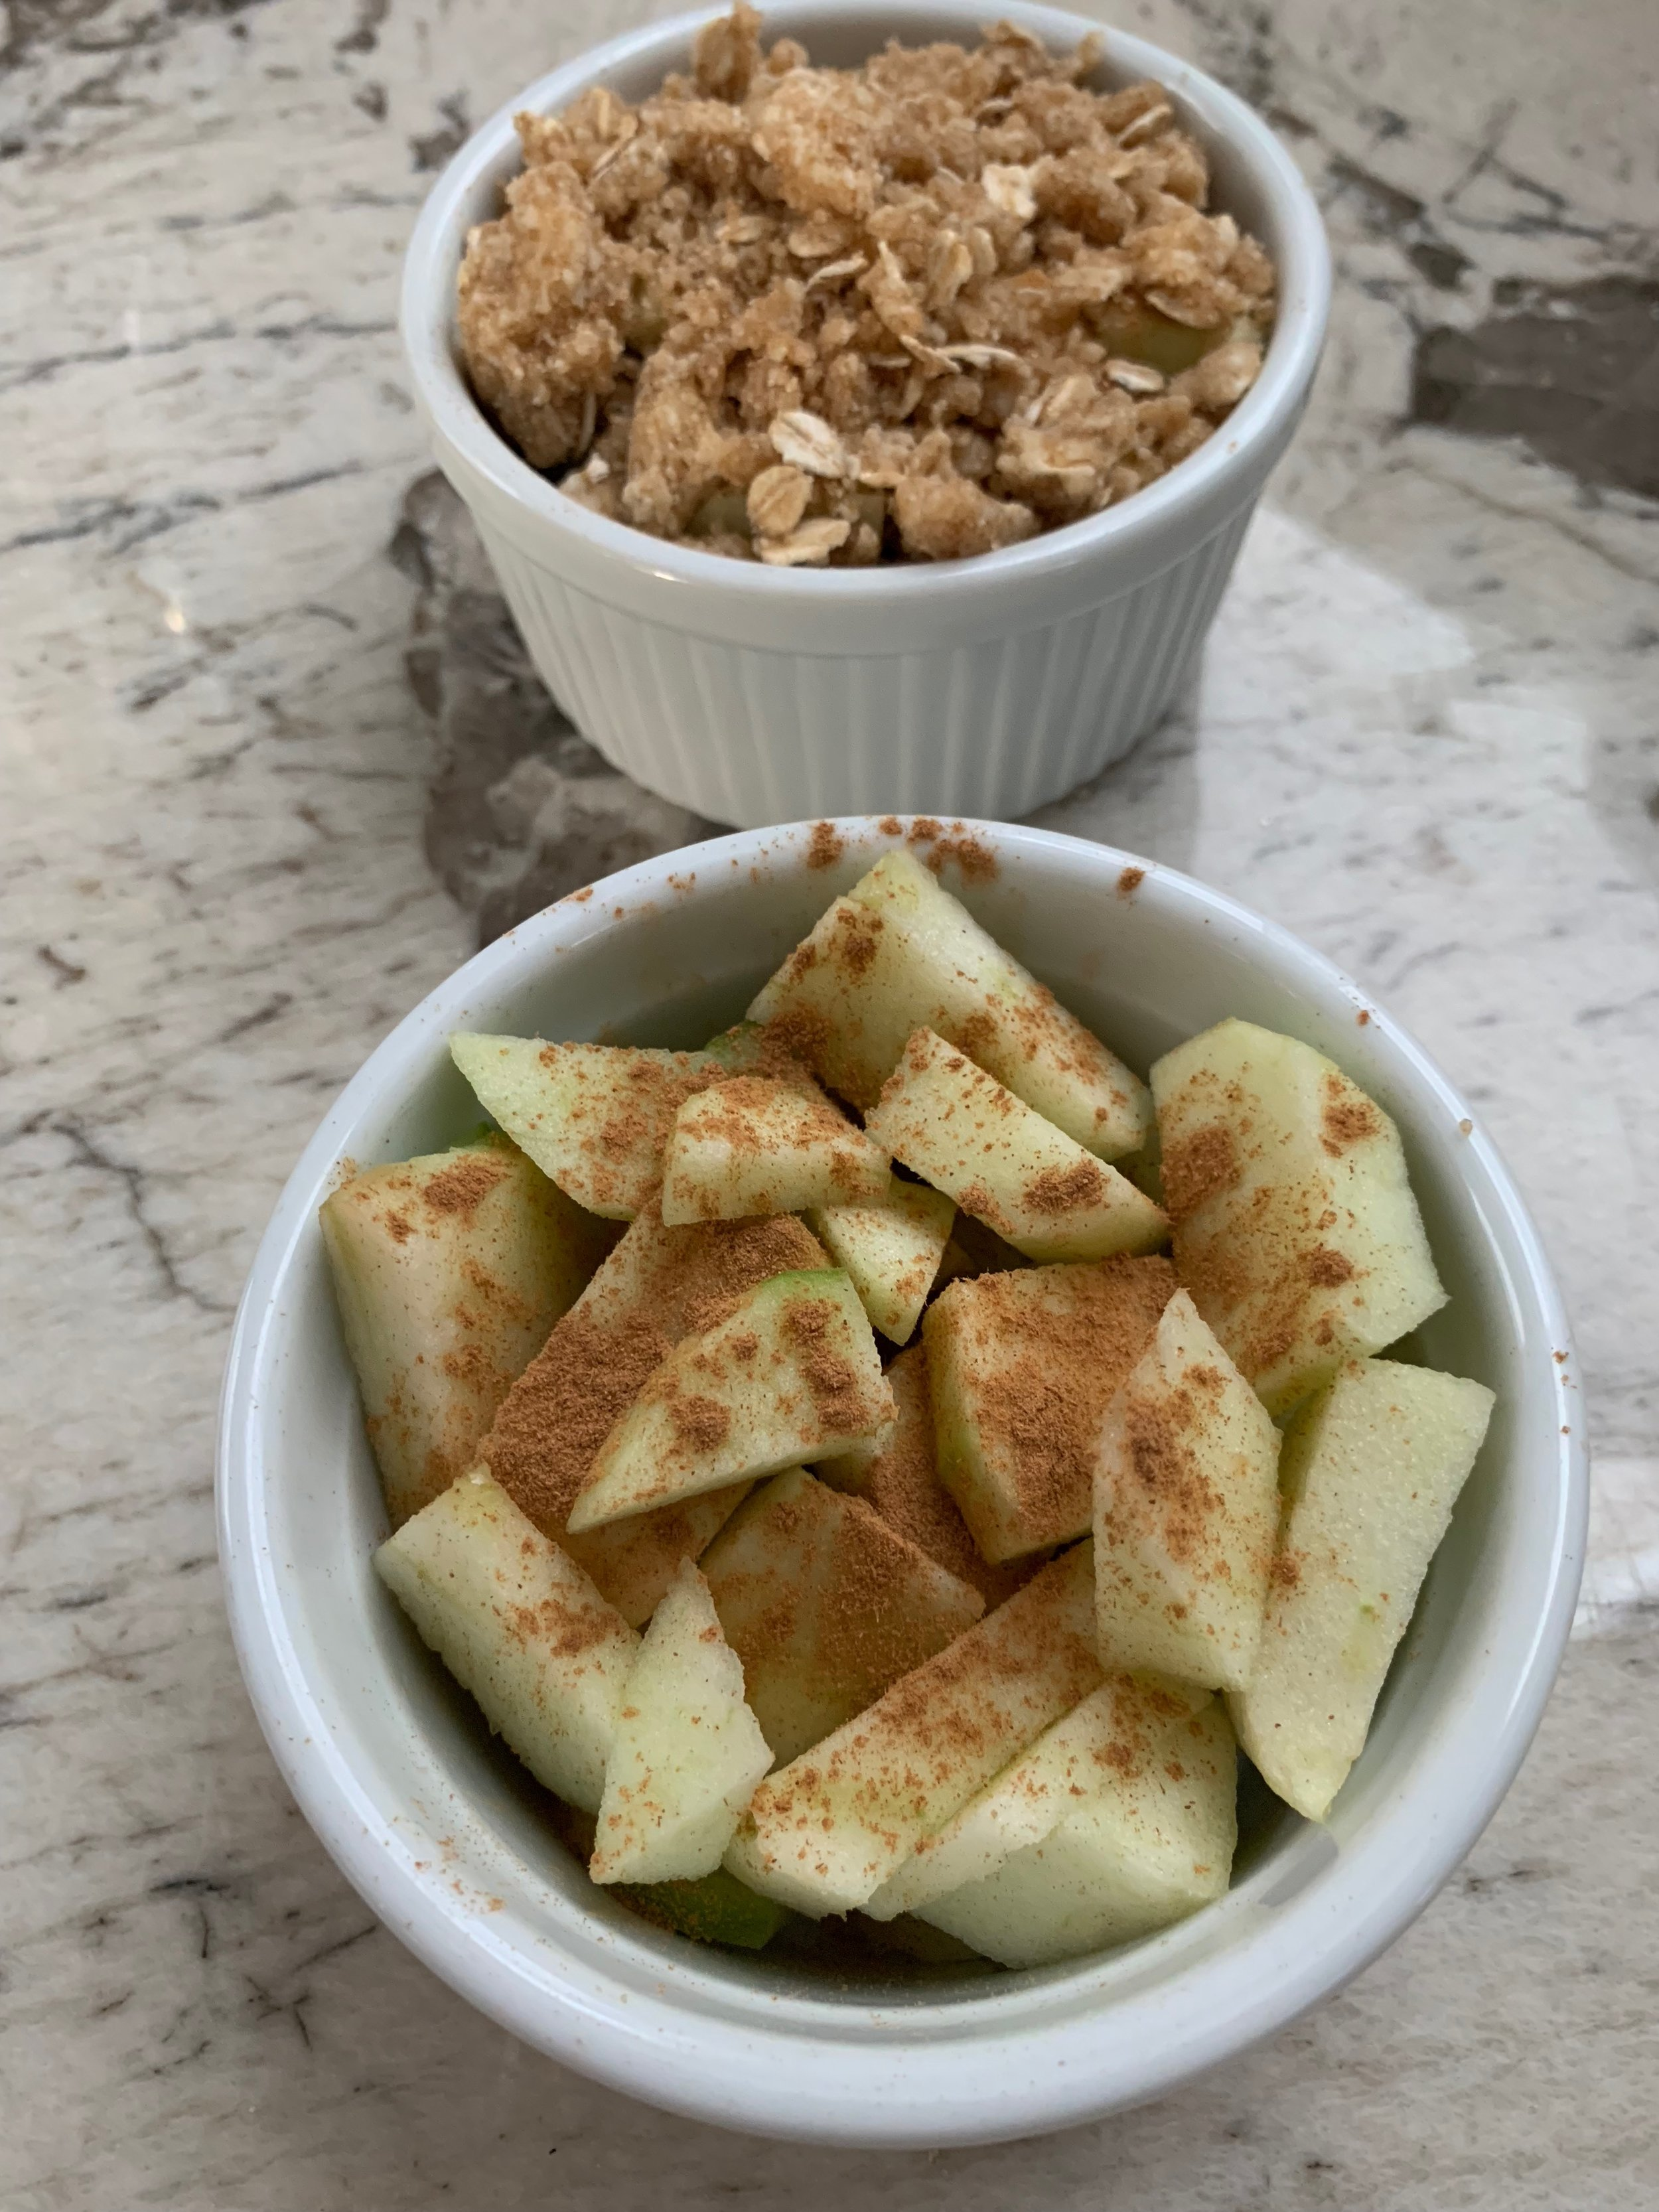 If you have extra ingredients, I love to make individual ramekin crisps. Perfect for the morning after to satisfy your sweet tooth!